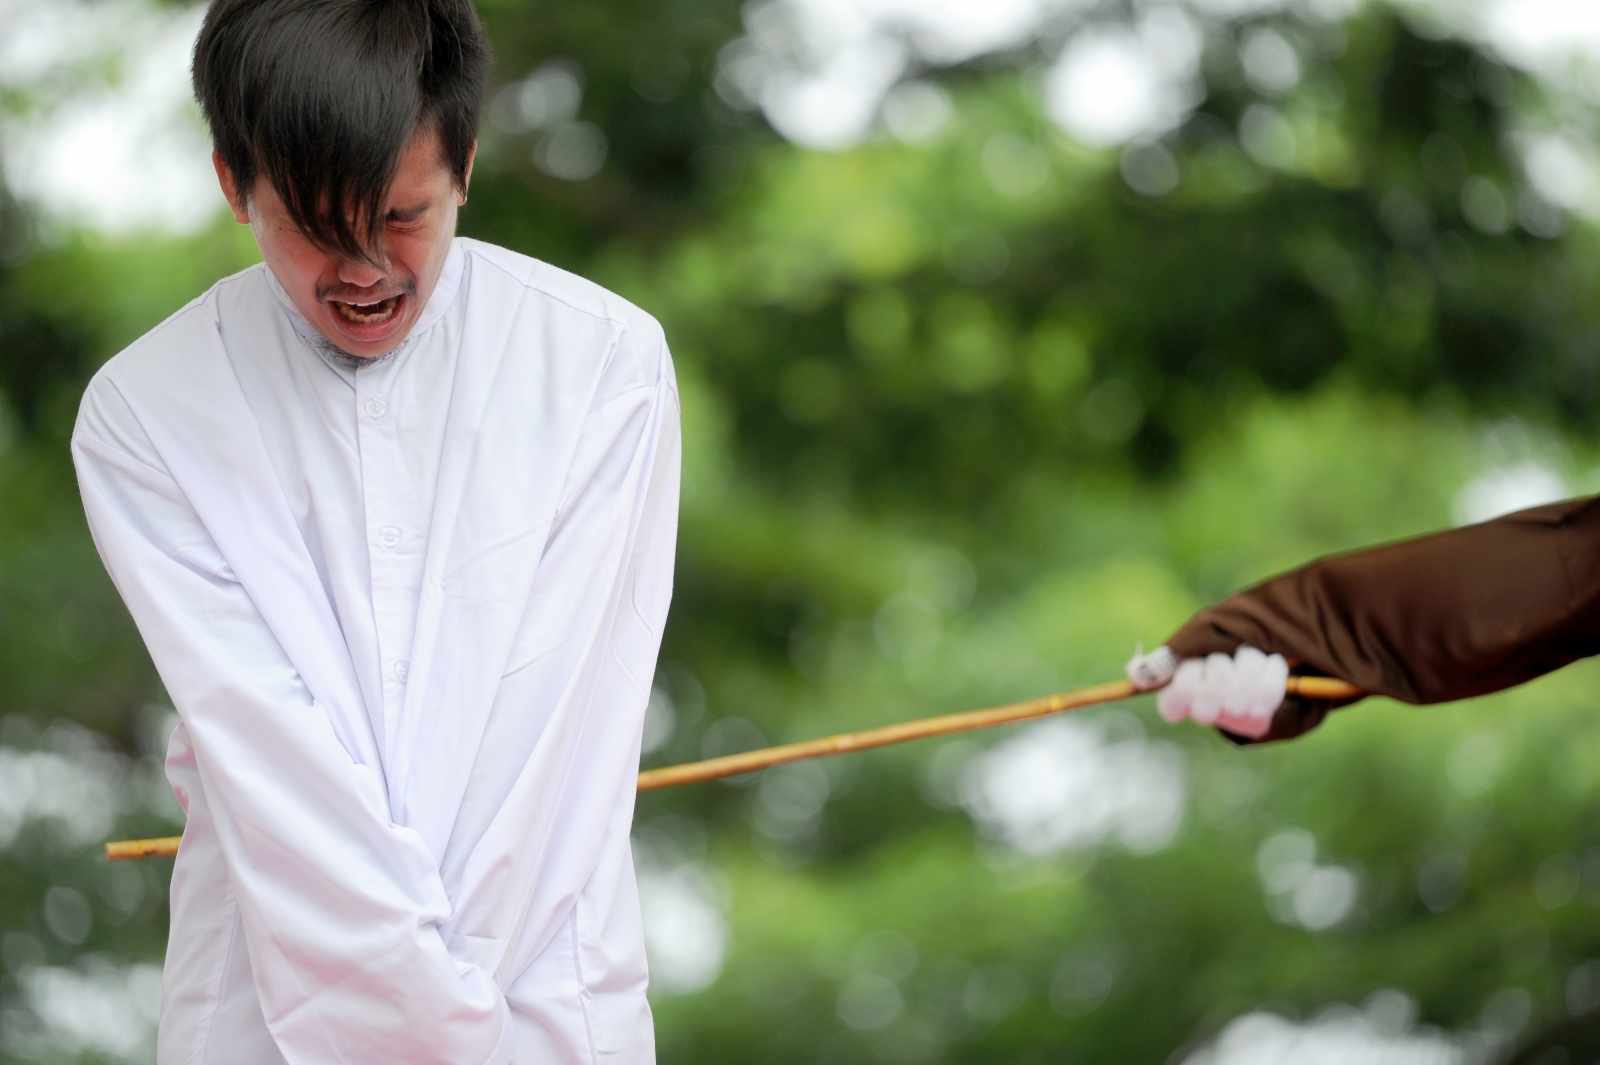 Man caned for allegedly being gay Indonesia